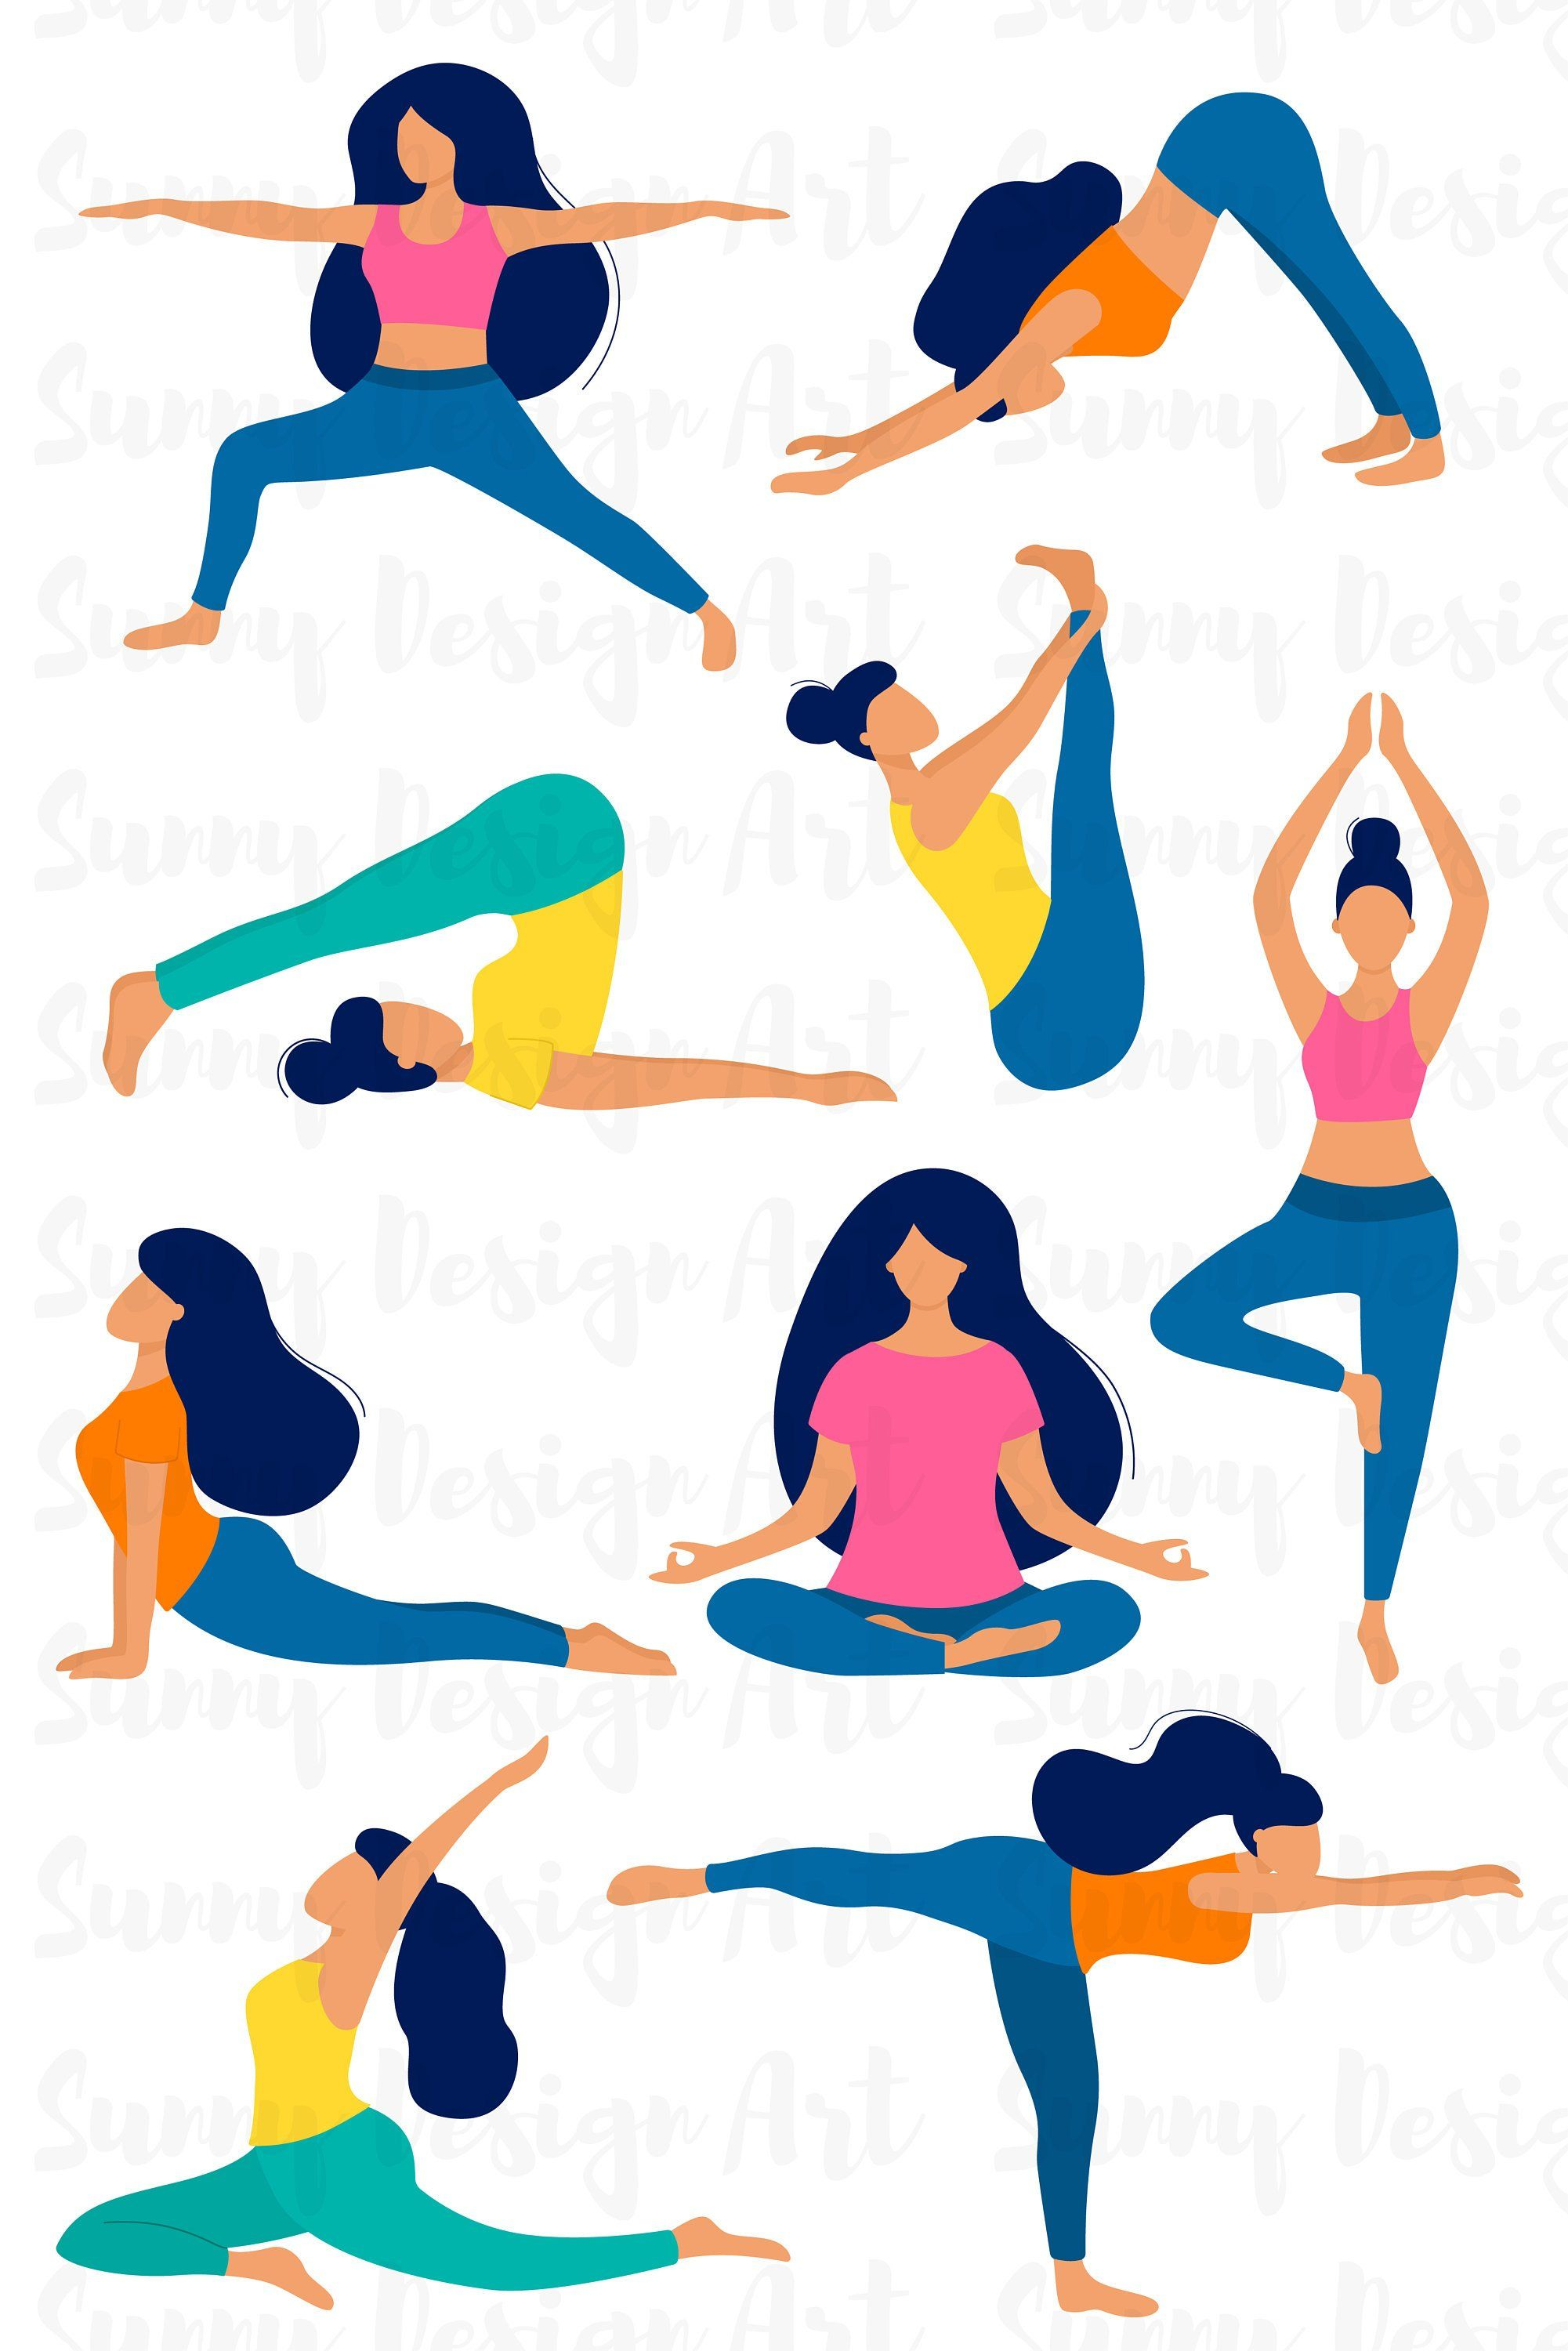 Vector Yoga Silhouette Clipart Planner Stickers Cute Yoga Poses Instant Download Commercial Use Gym Graphics Fitness Workout Set People Illustration Yoga Png Silhouette Illustration